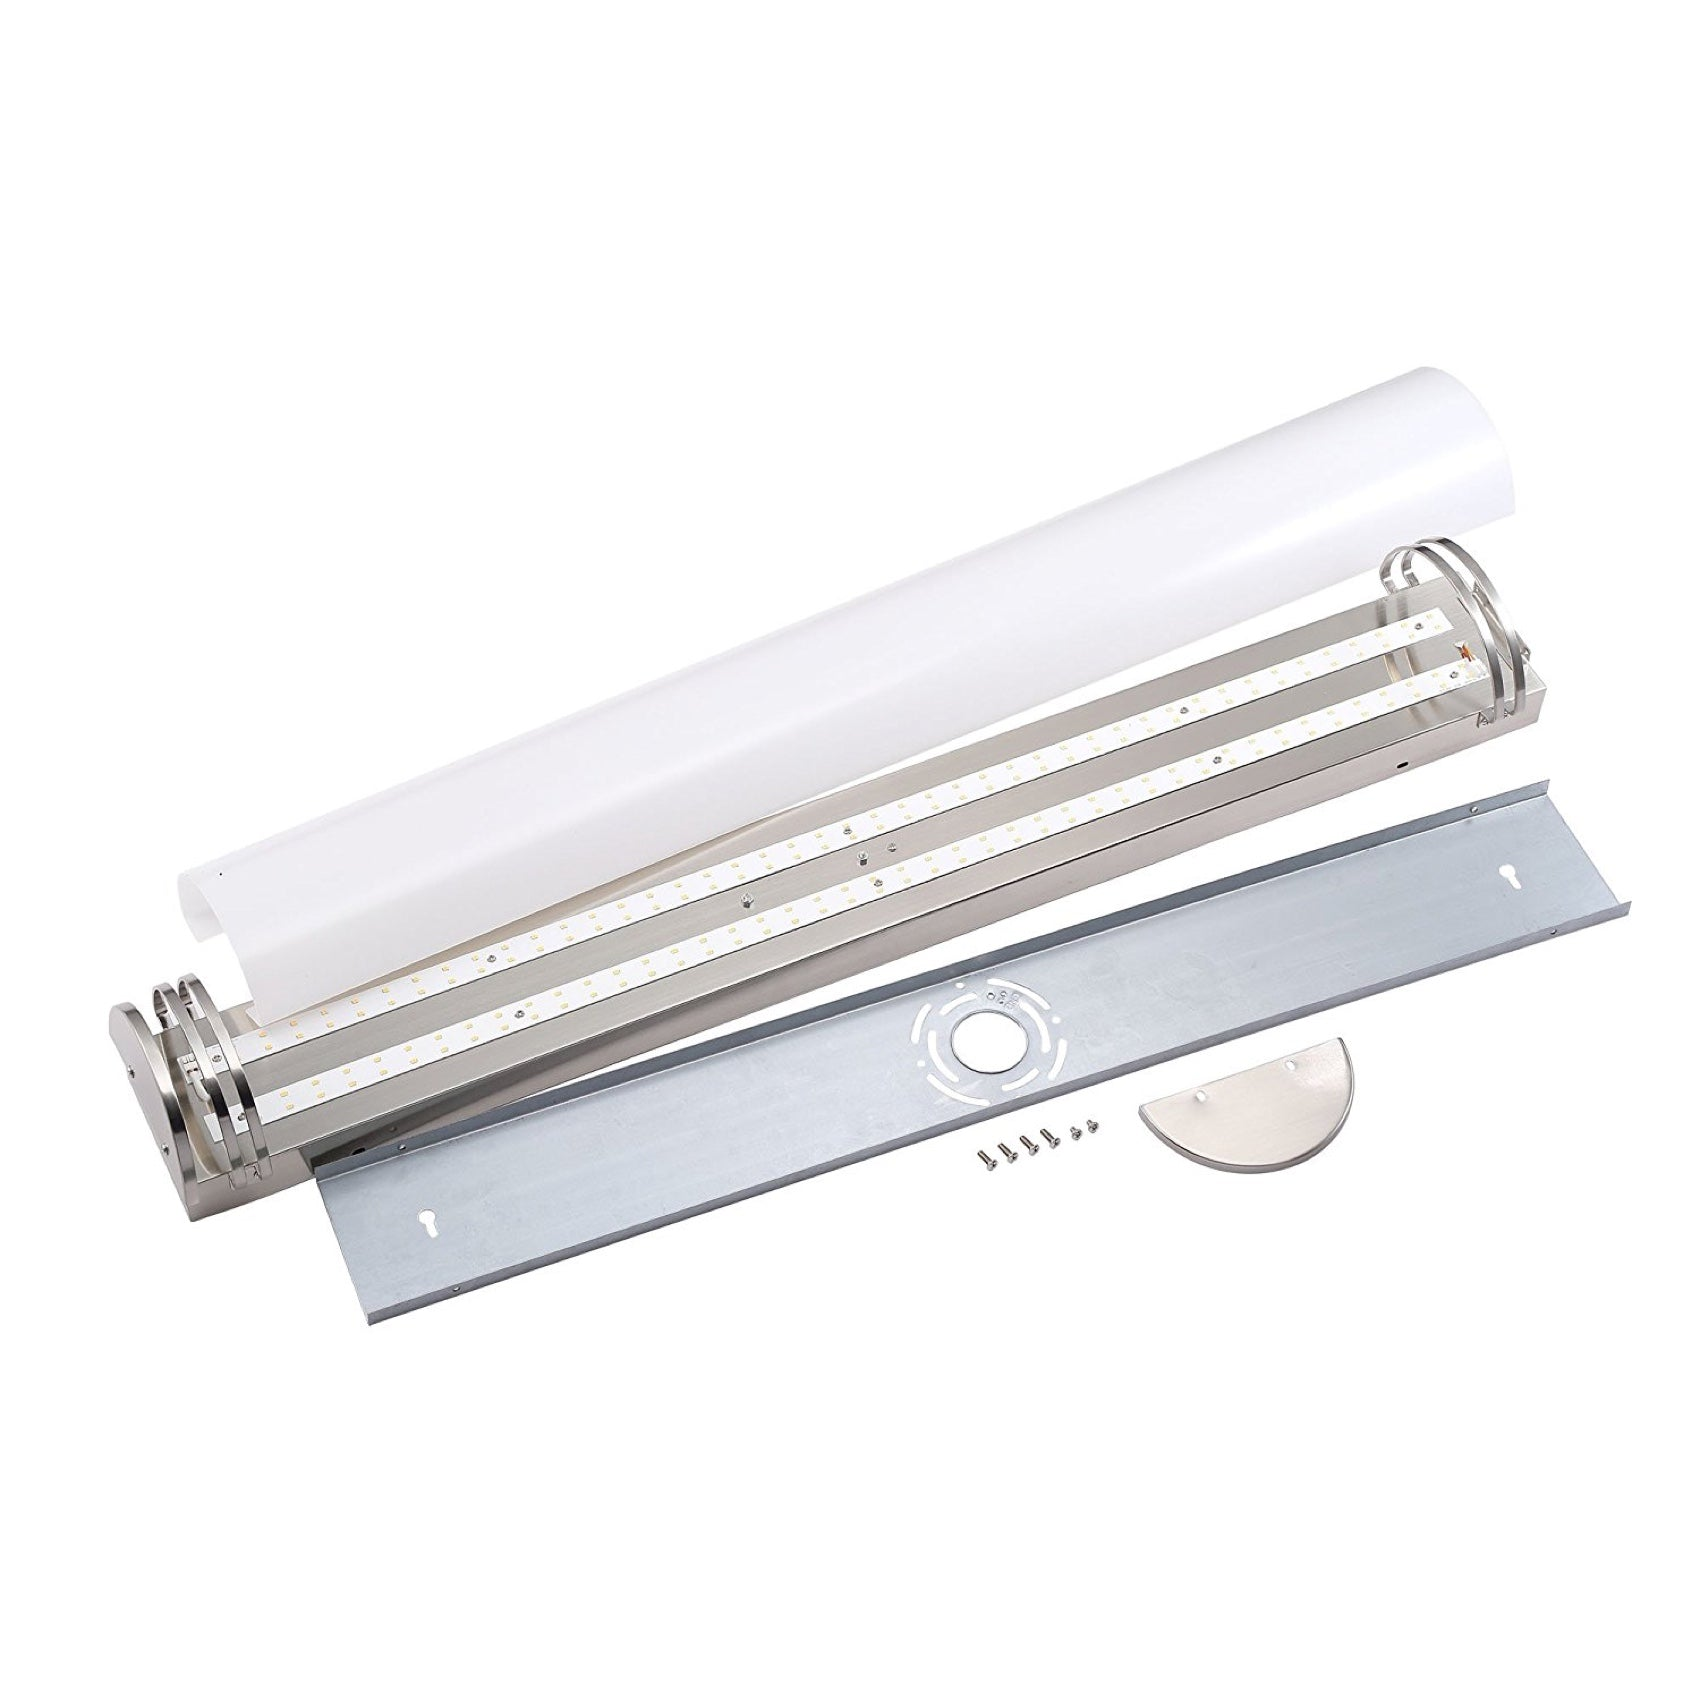 LED Bath Vanity Light, 48-inch, 35W, Brushed Nickel Finish, Cool White (4000K)